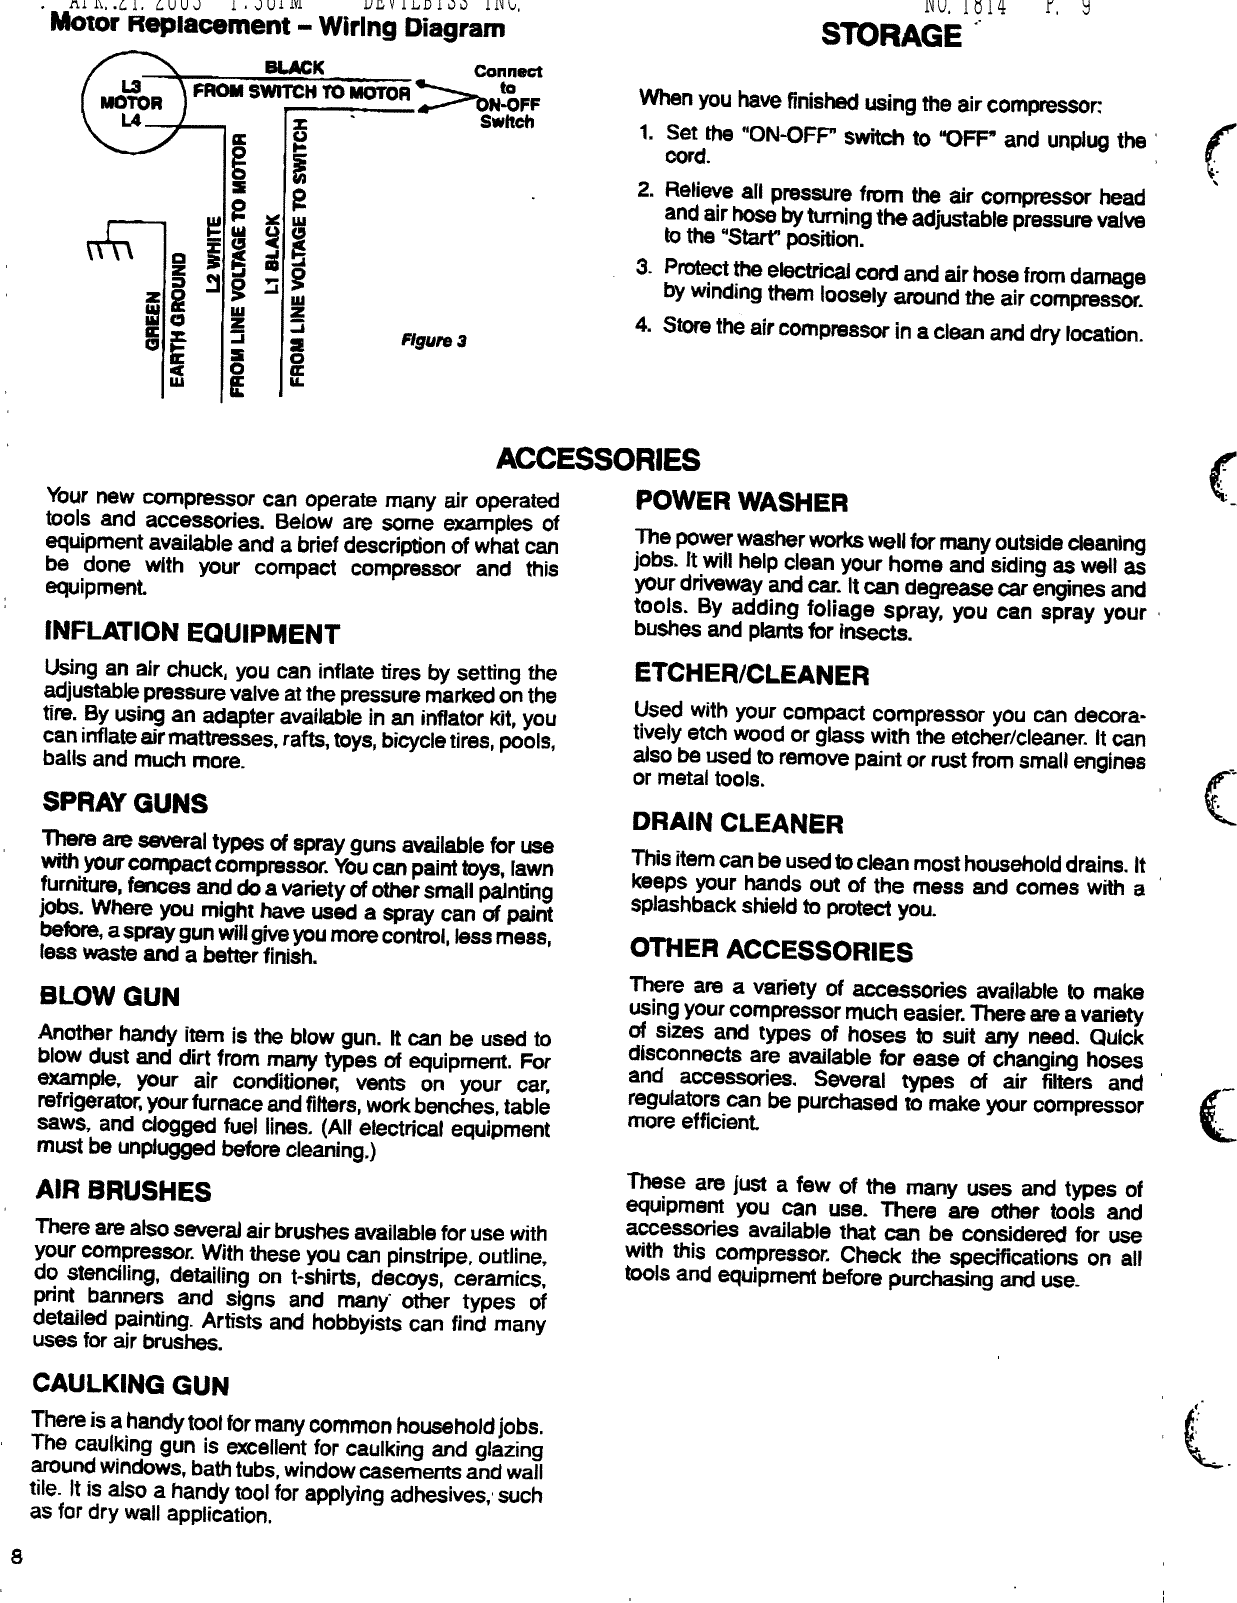 hight resolution of page 8 of 11 sears sears craftsman 919 150270 users